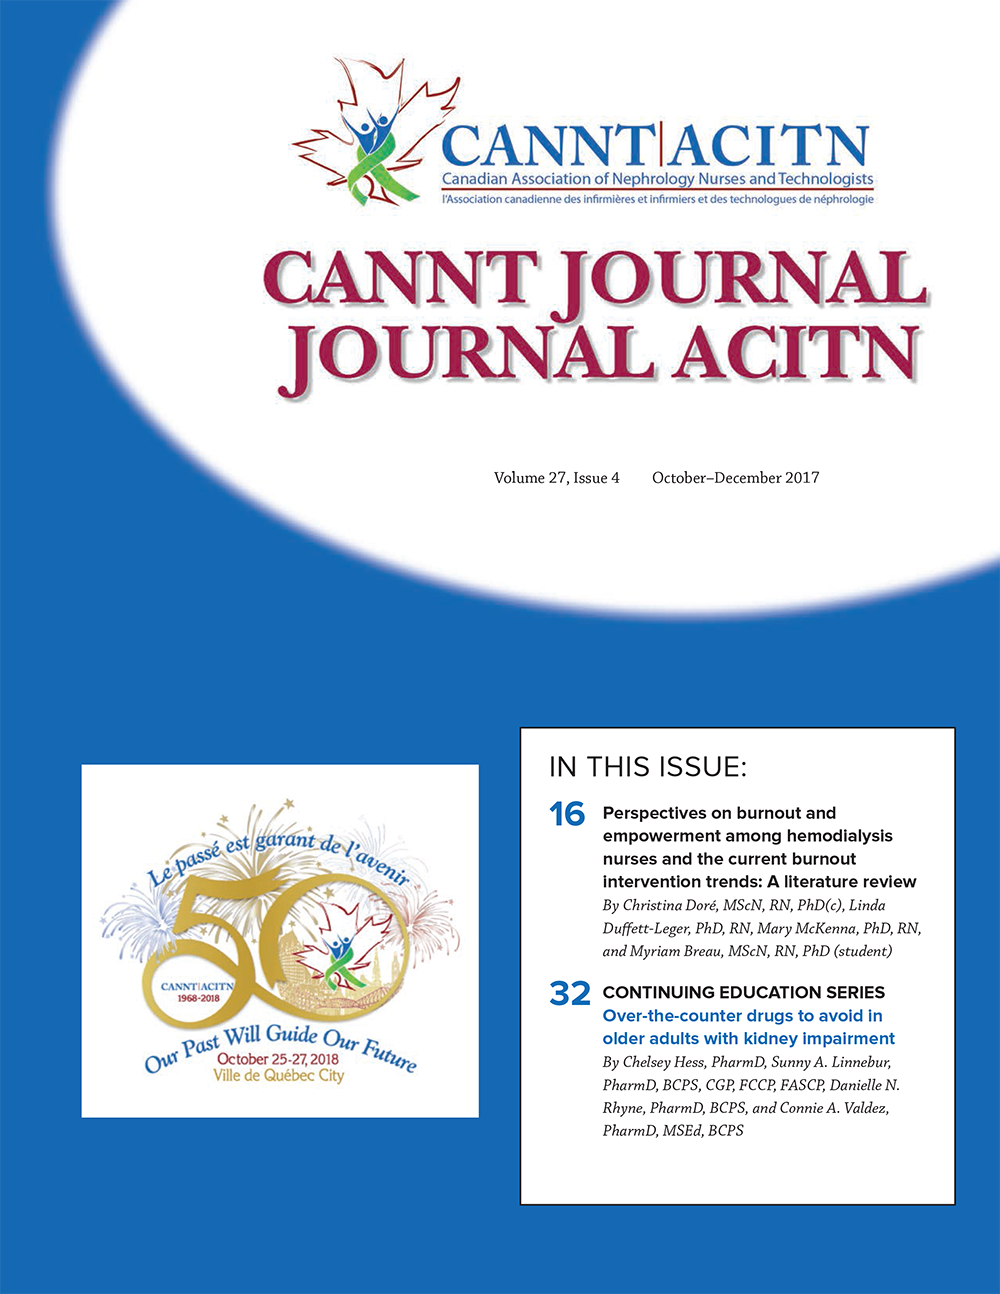 CANNT Journal cover